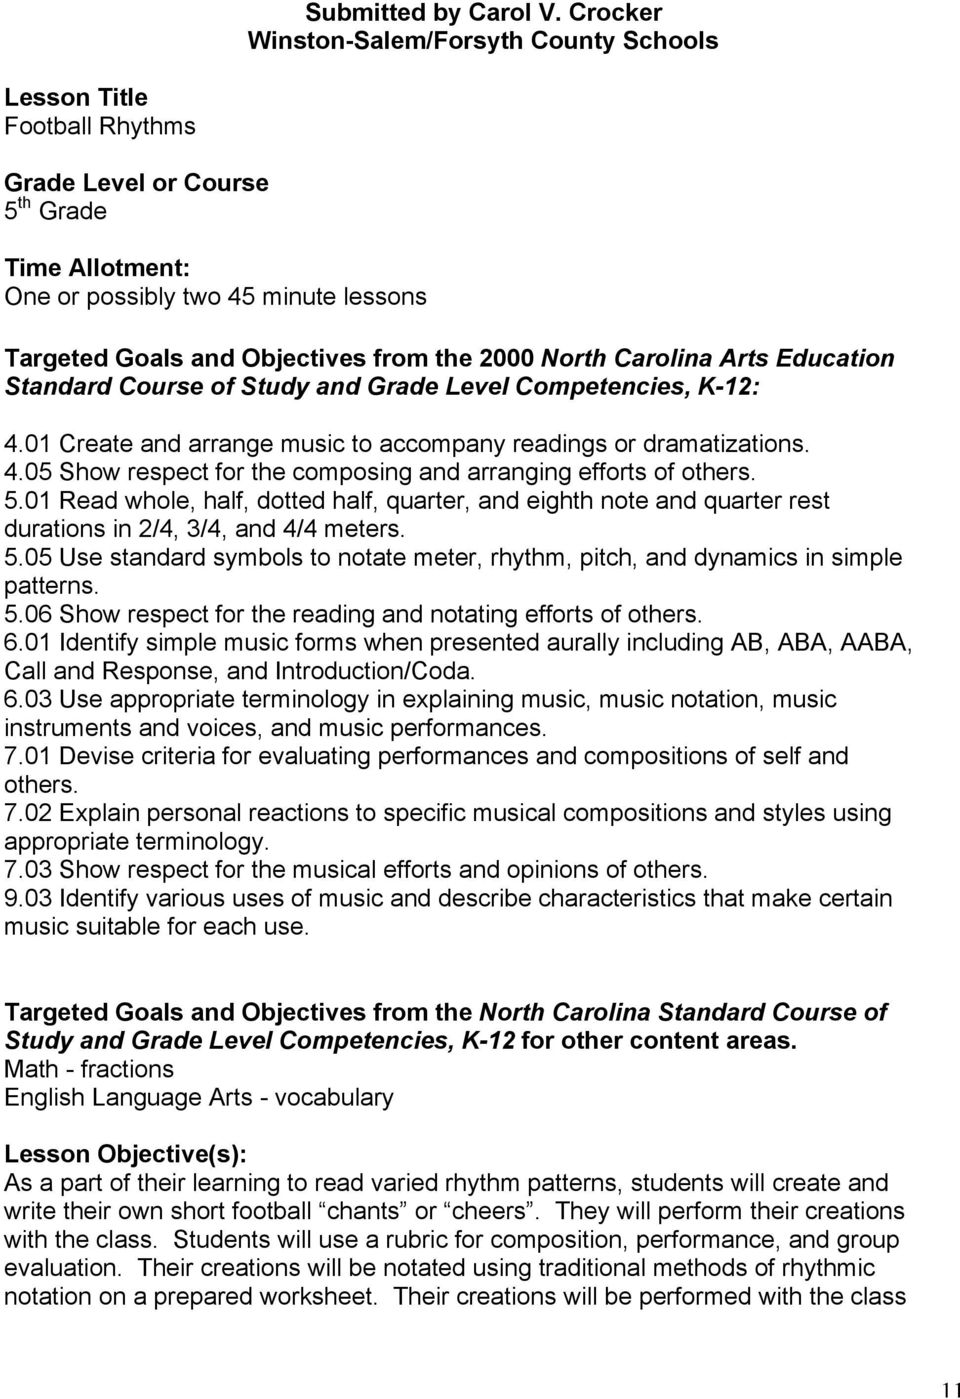 the 2000 North Carolina Arts Education Standard Course of Study and Grade Level Competencies, K-12: 4.01 Create and arrange music to accompany readings or dramatizations. 4.05 Show respect for the composing and arranging efforts of others.